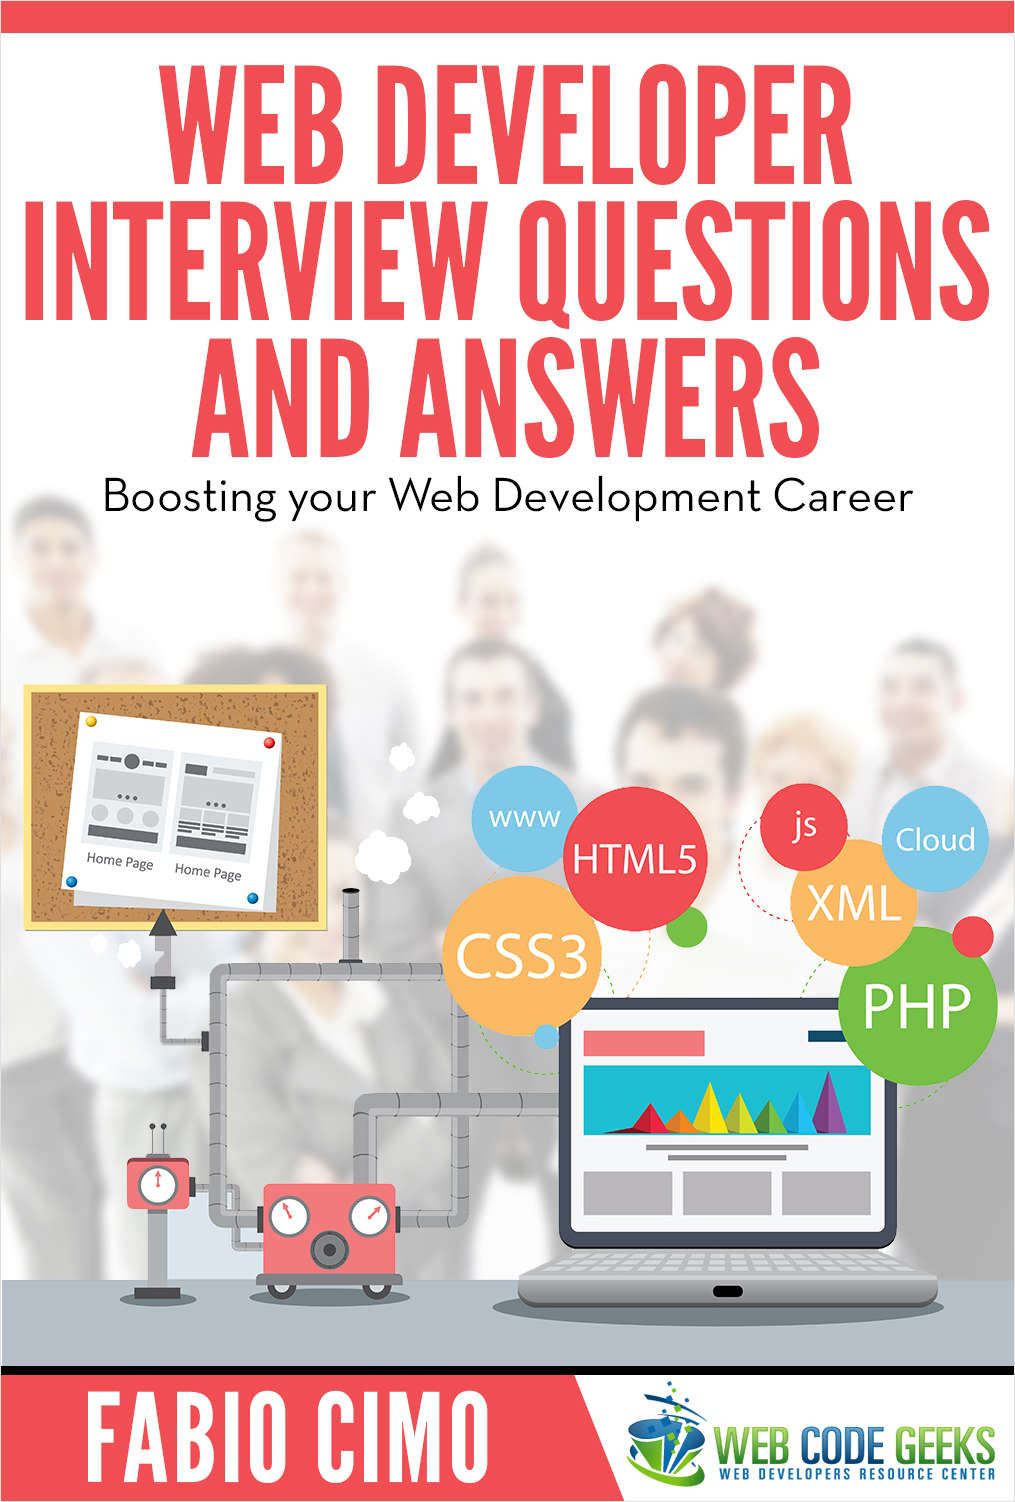 Web Developer Interview Questions And Answers